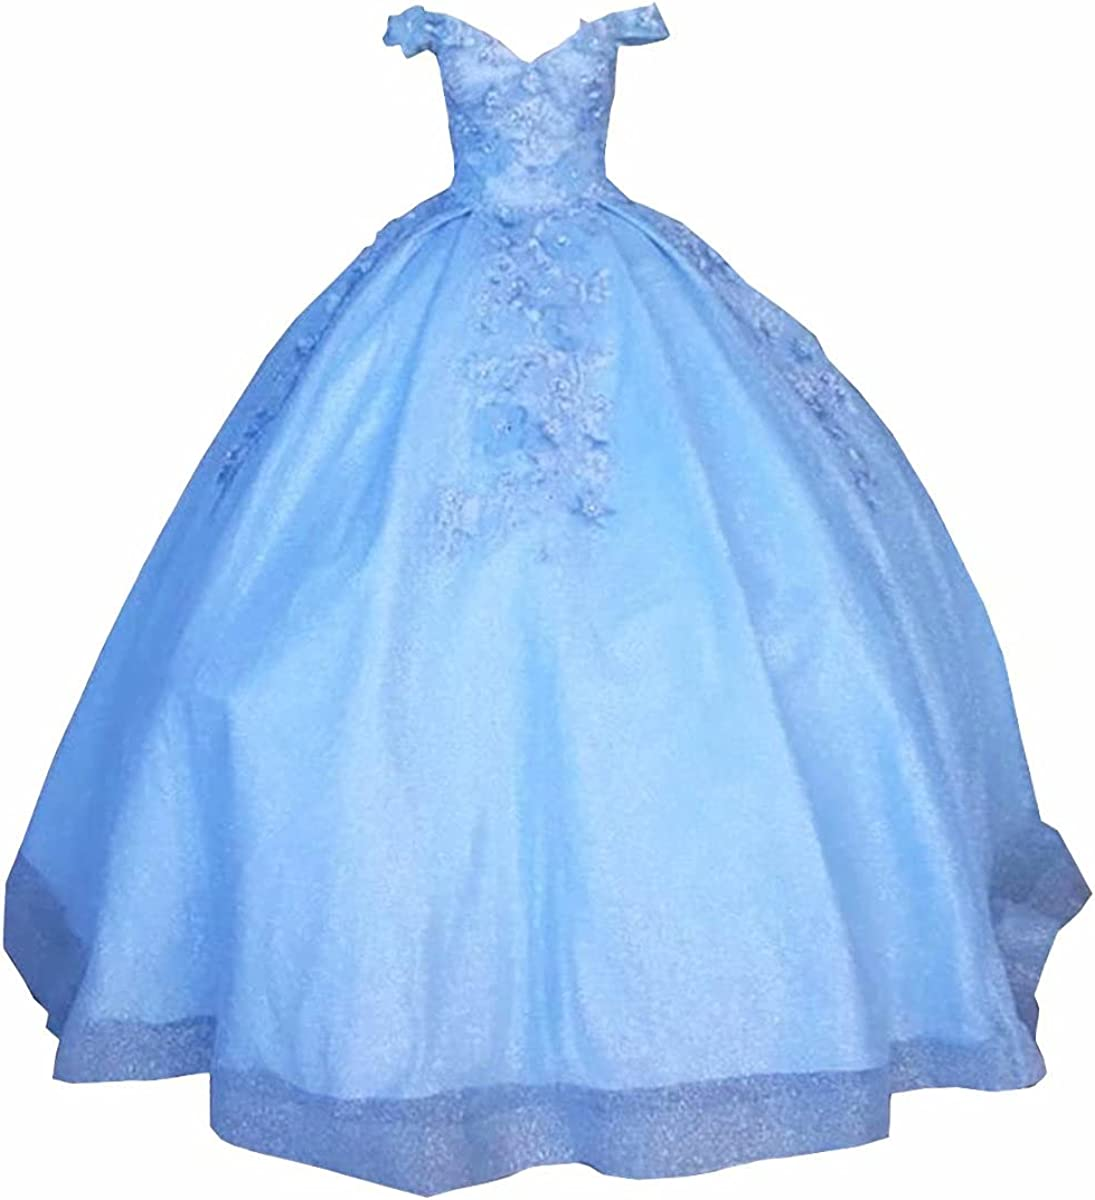 2021 Glitter Fabric Off The Shoulder Quinceanera Dresses Ball Gown 3D Floral Flowers Lace with Sleeves Prom Formal Dress